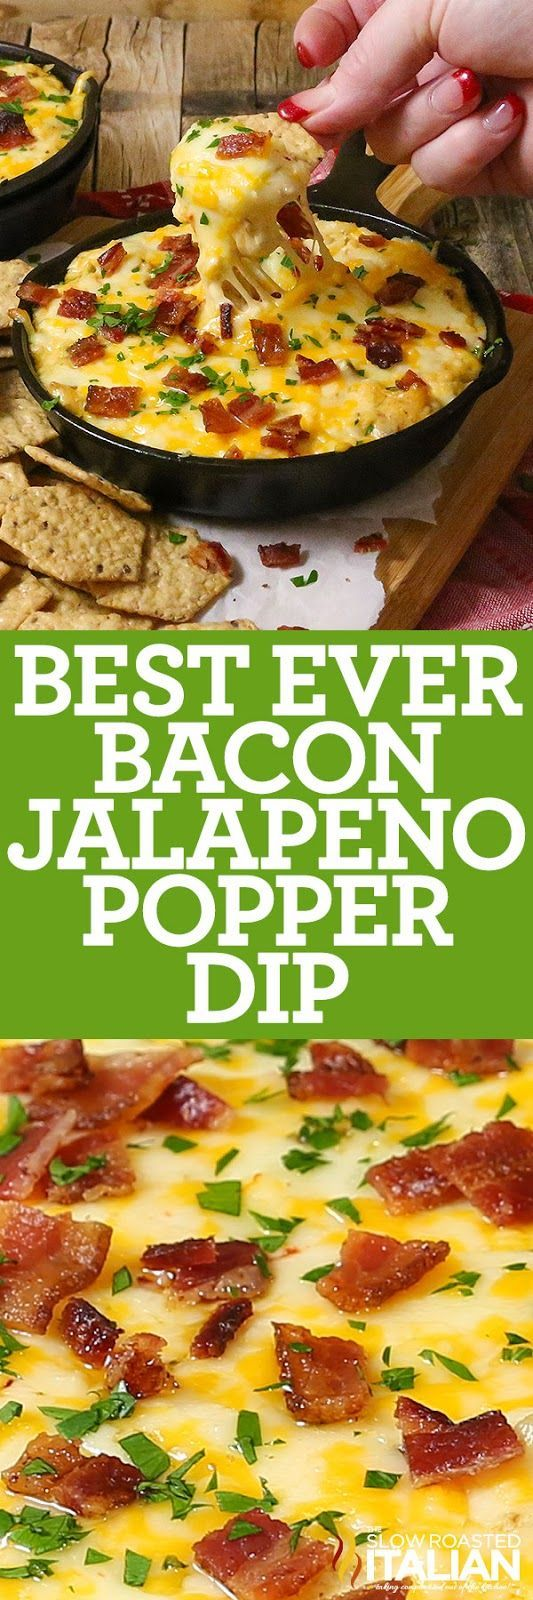 Best Ever Bacon Jalapeno Popper Dip is a simple recipe for an unforgettable appetizer. It is rich, creamy and fully loaded with 3 types of cheese, copious amounts of bacon and a craveable crunch that will have you coming back for more. Oh and it happens to be gluten-free. That is a win at any party. Partnered with @Crunchmaster #crunchmaster #ad http://www.theslowroasteditalian.com/2017/11/best-ever-bacon-jalapeno-popper-dip-recipe.html